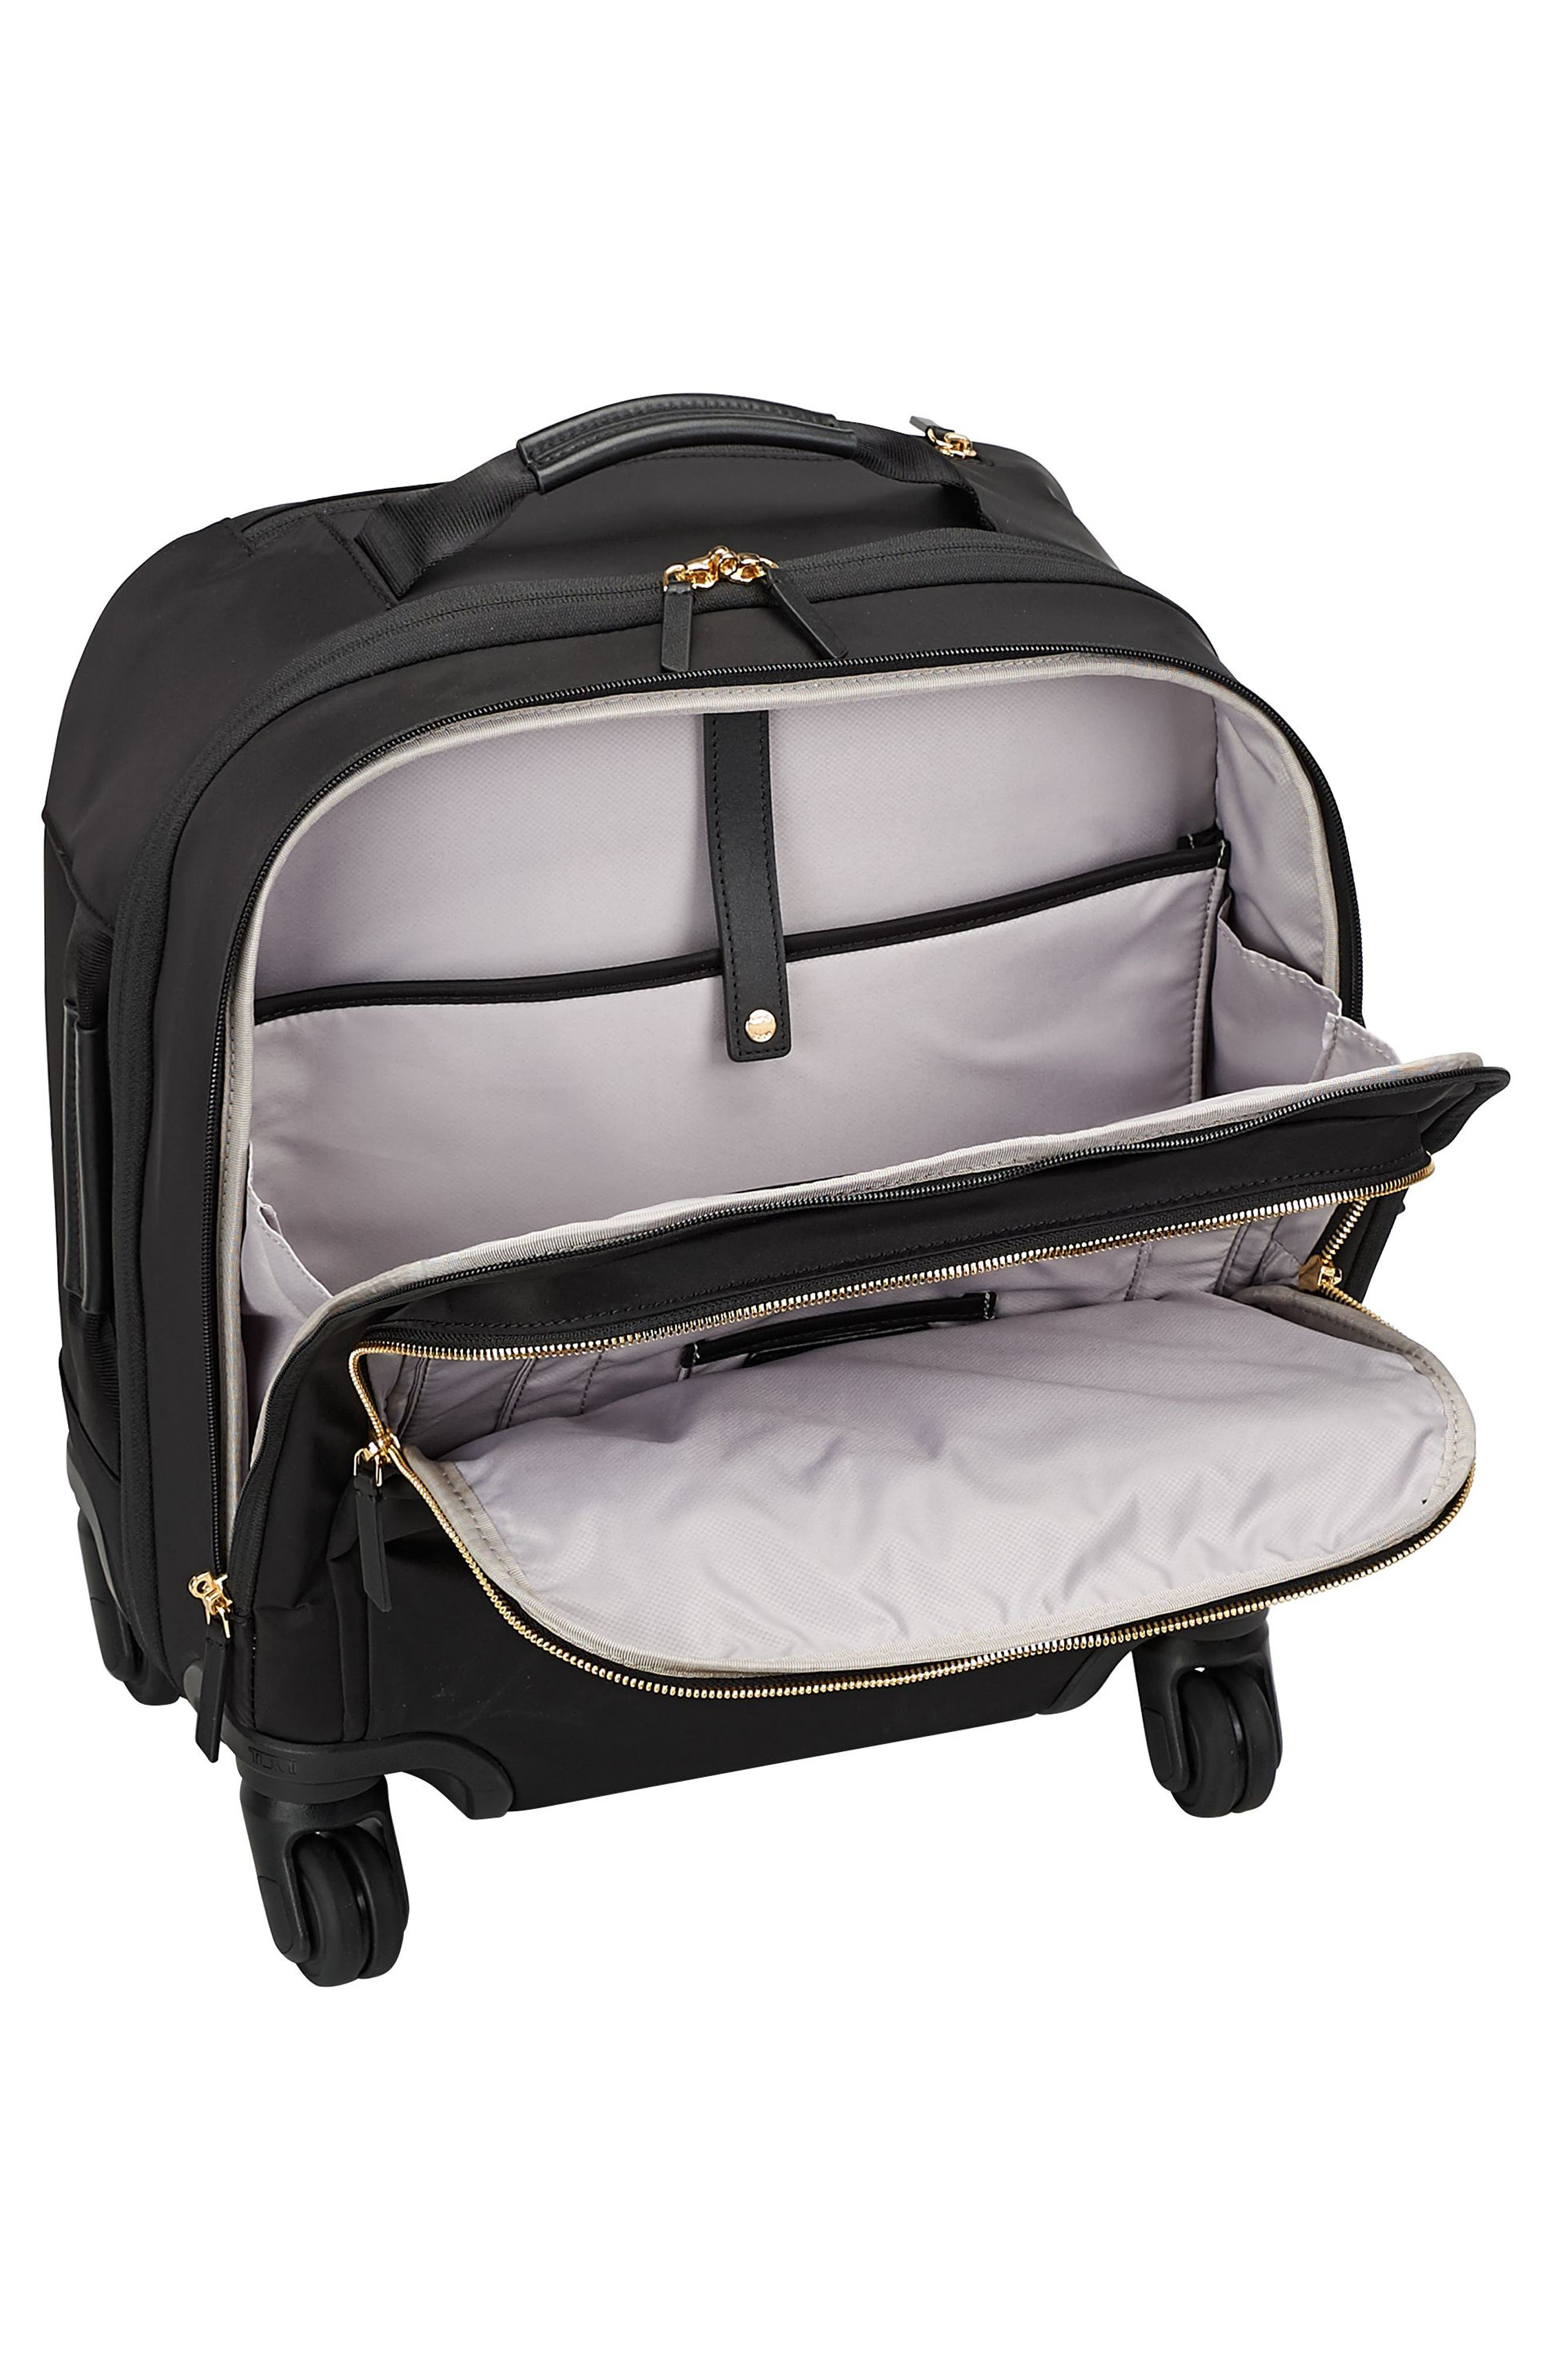 TUMI,                             Voyageur Osona 16-Inch Compact Carry-On,                             Alternate thumbnail 4, color,                             BLACK